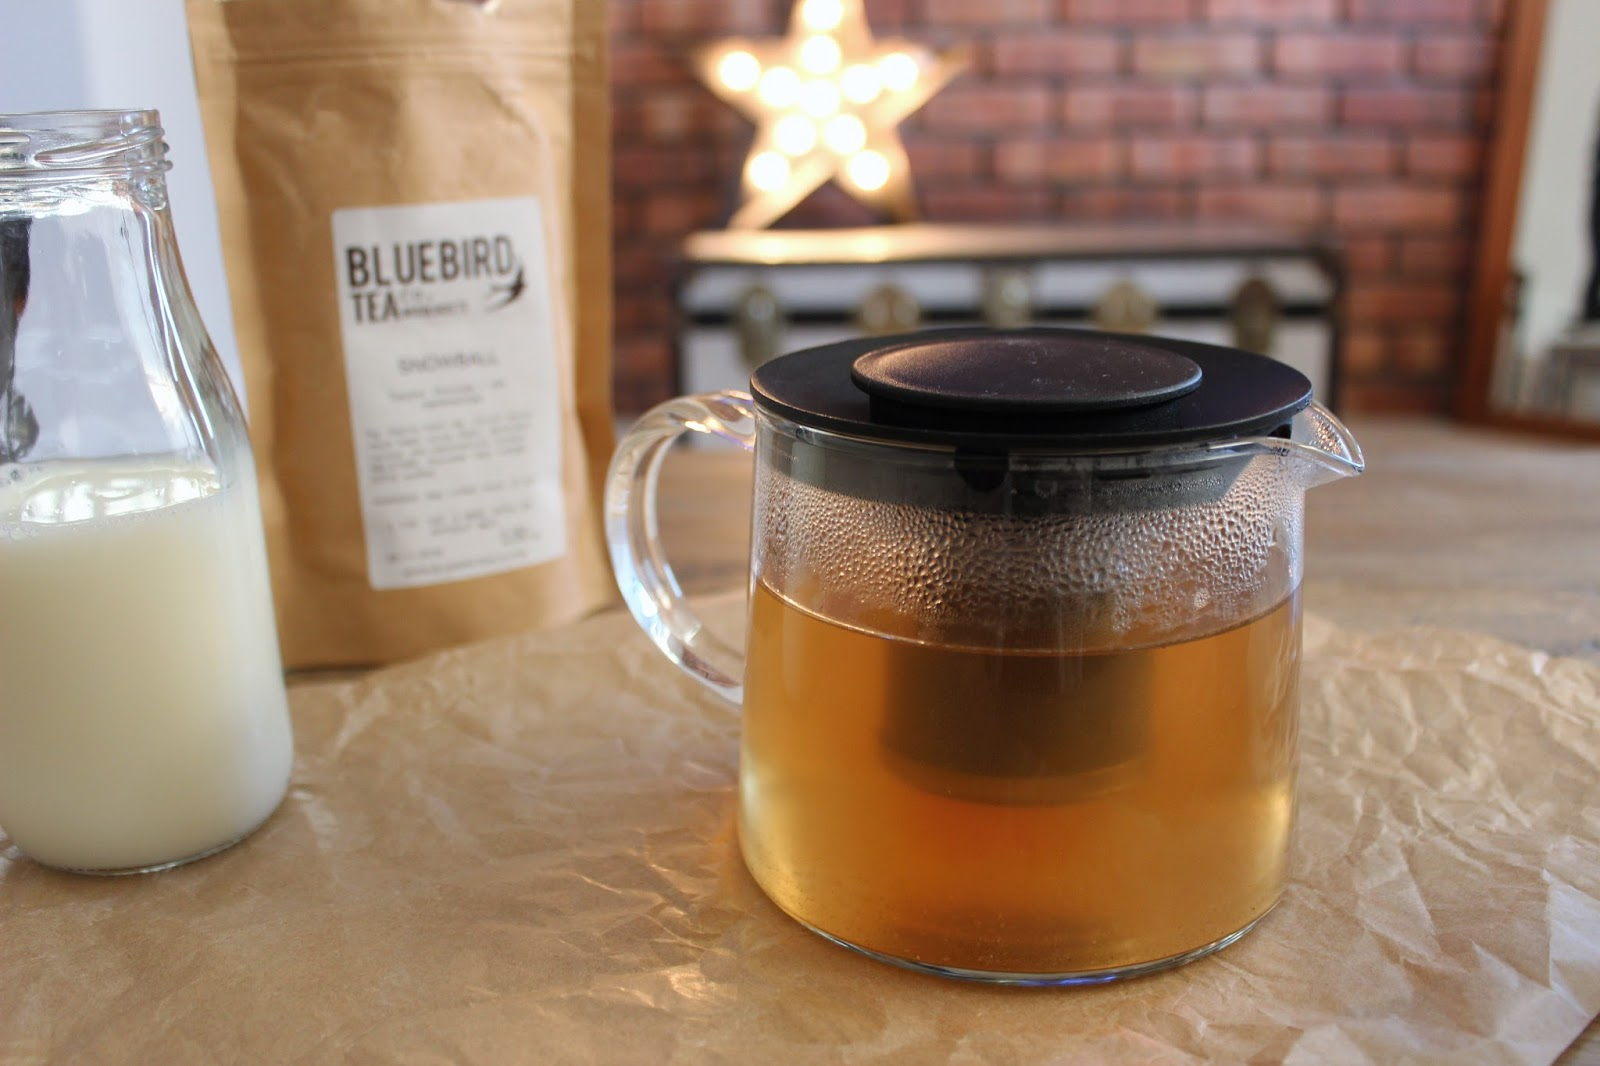 bluebird co christmas tea